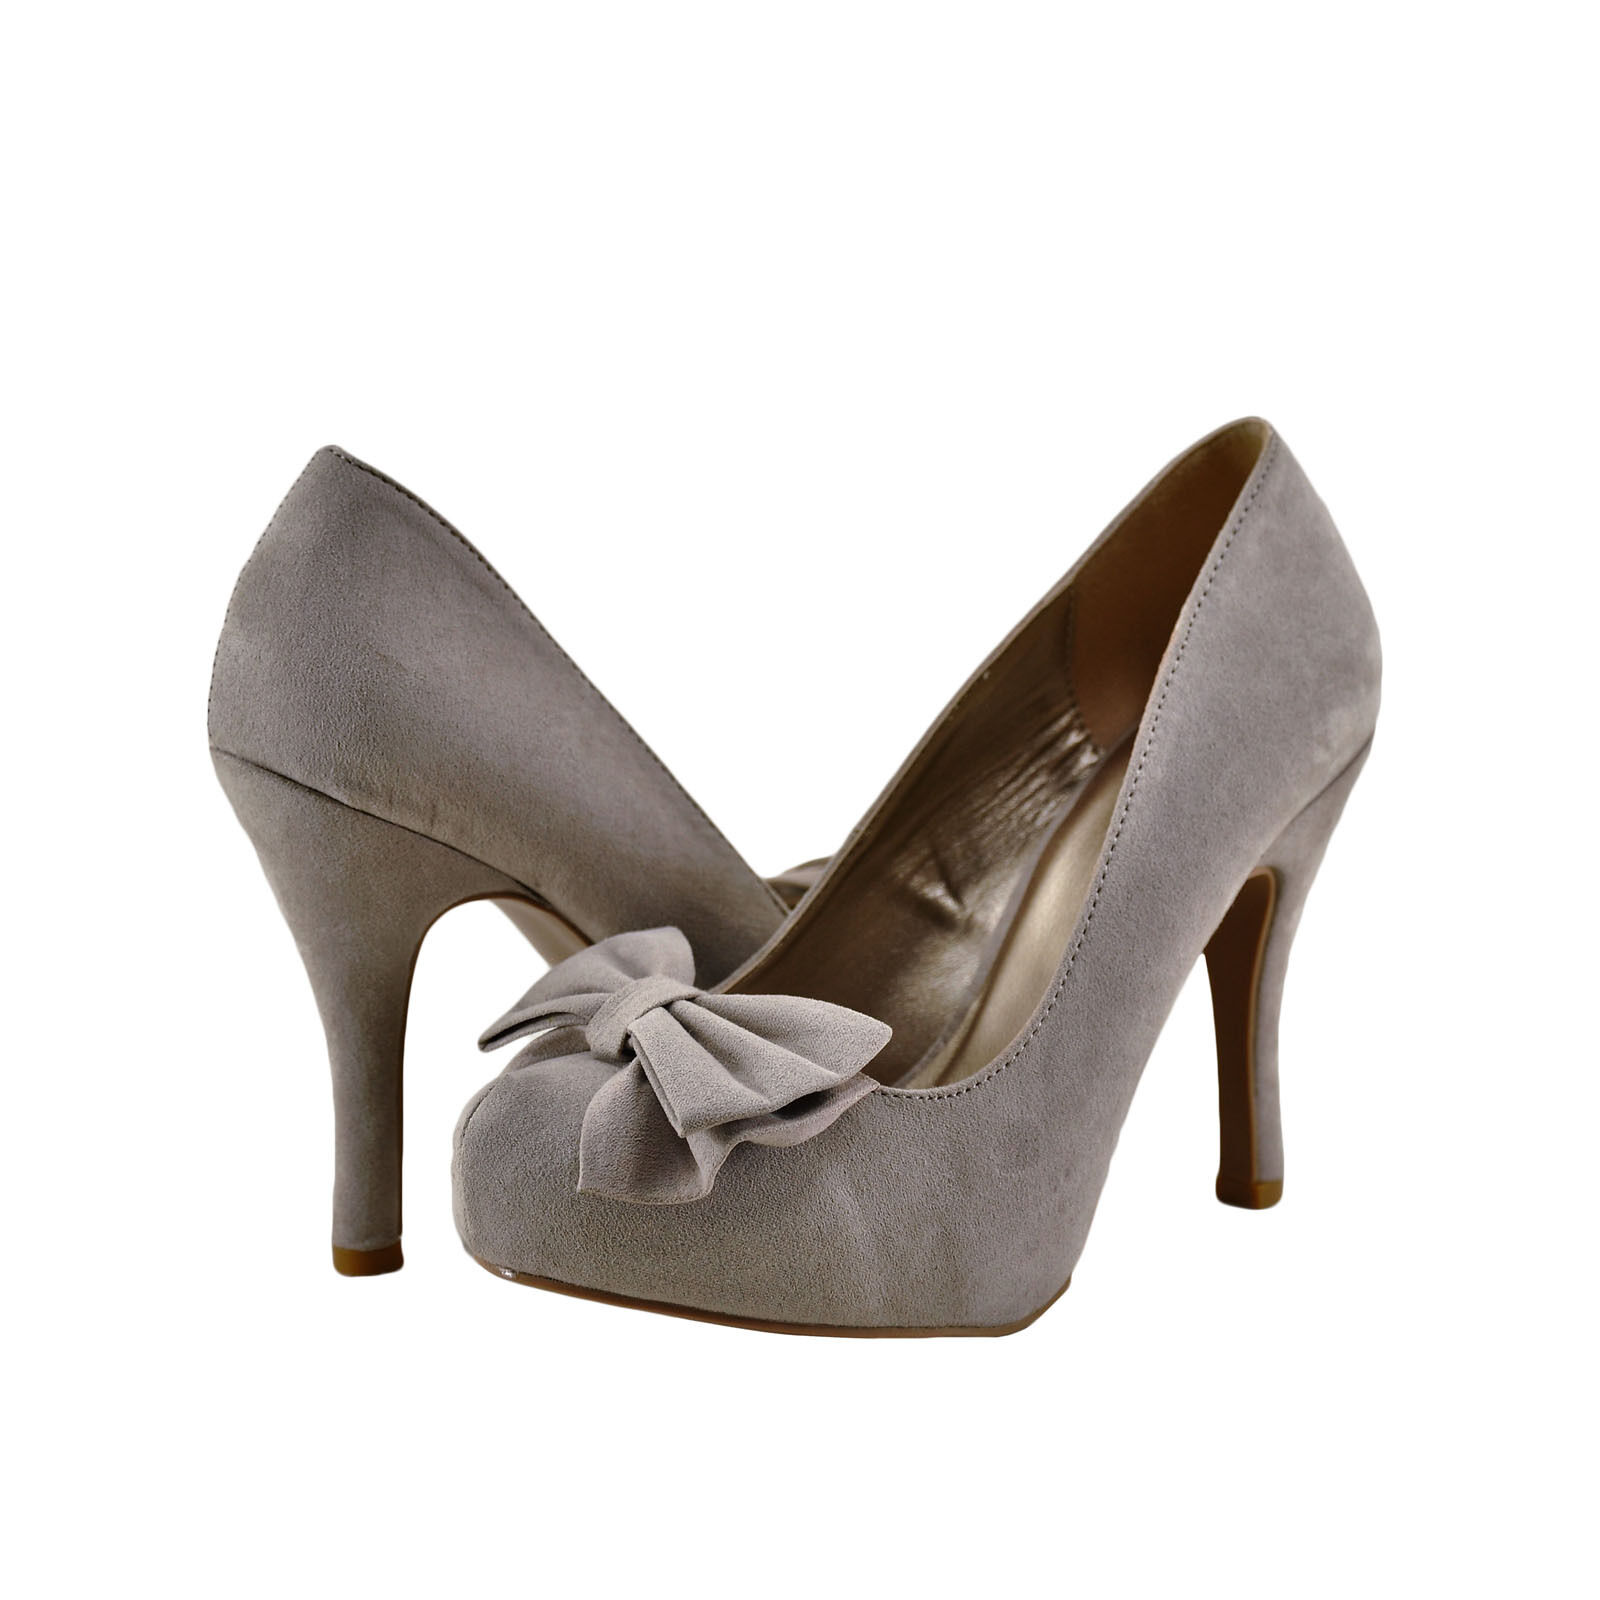 Womens shoes Qupid Trench 256x Closed Toe Bow Embellished Pump Taupe New